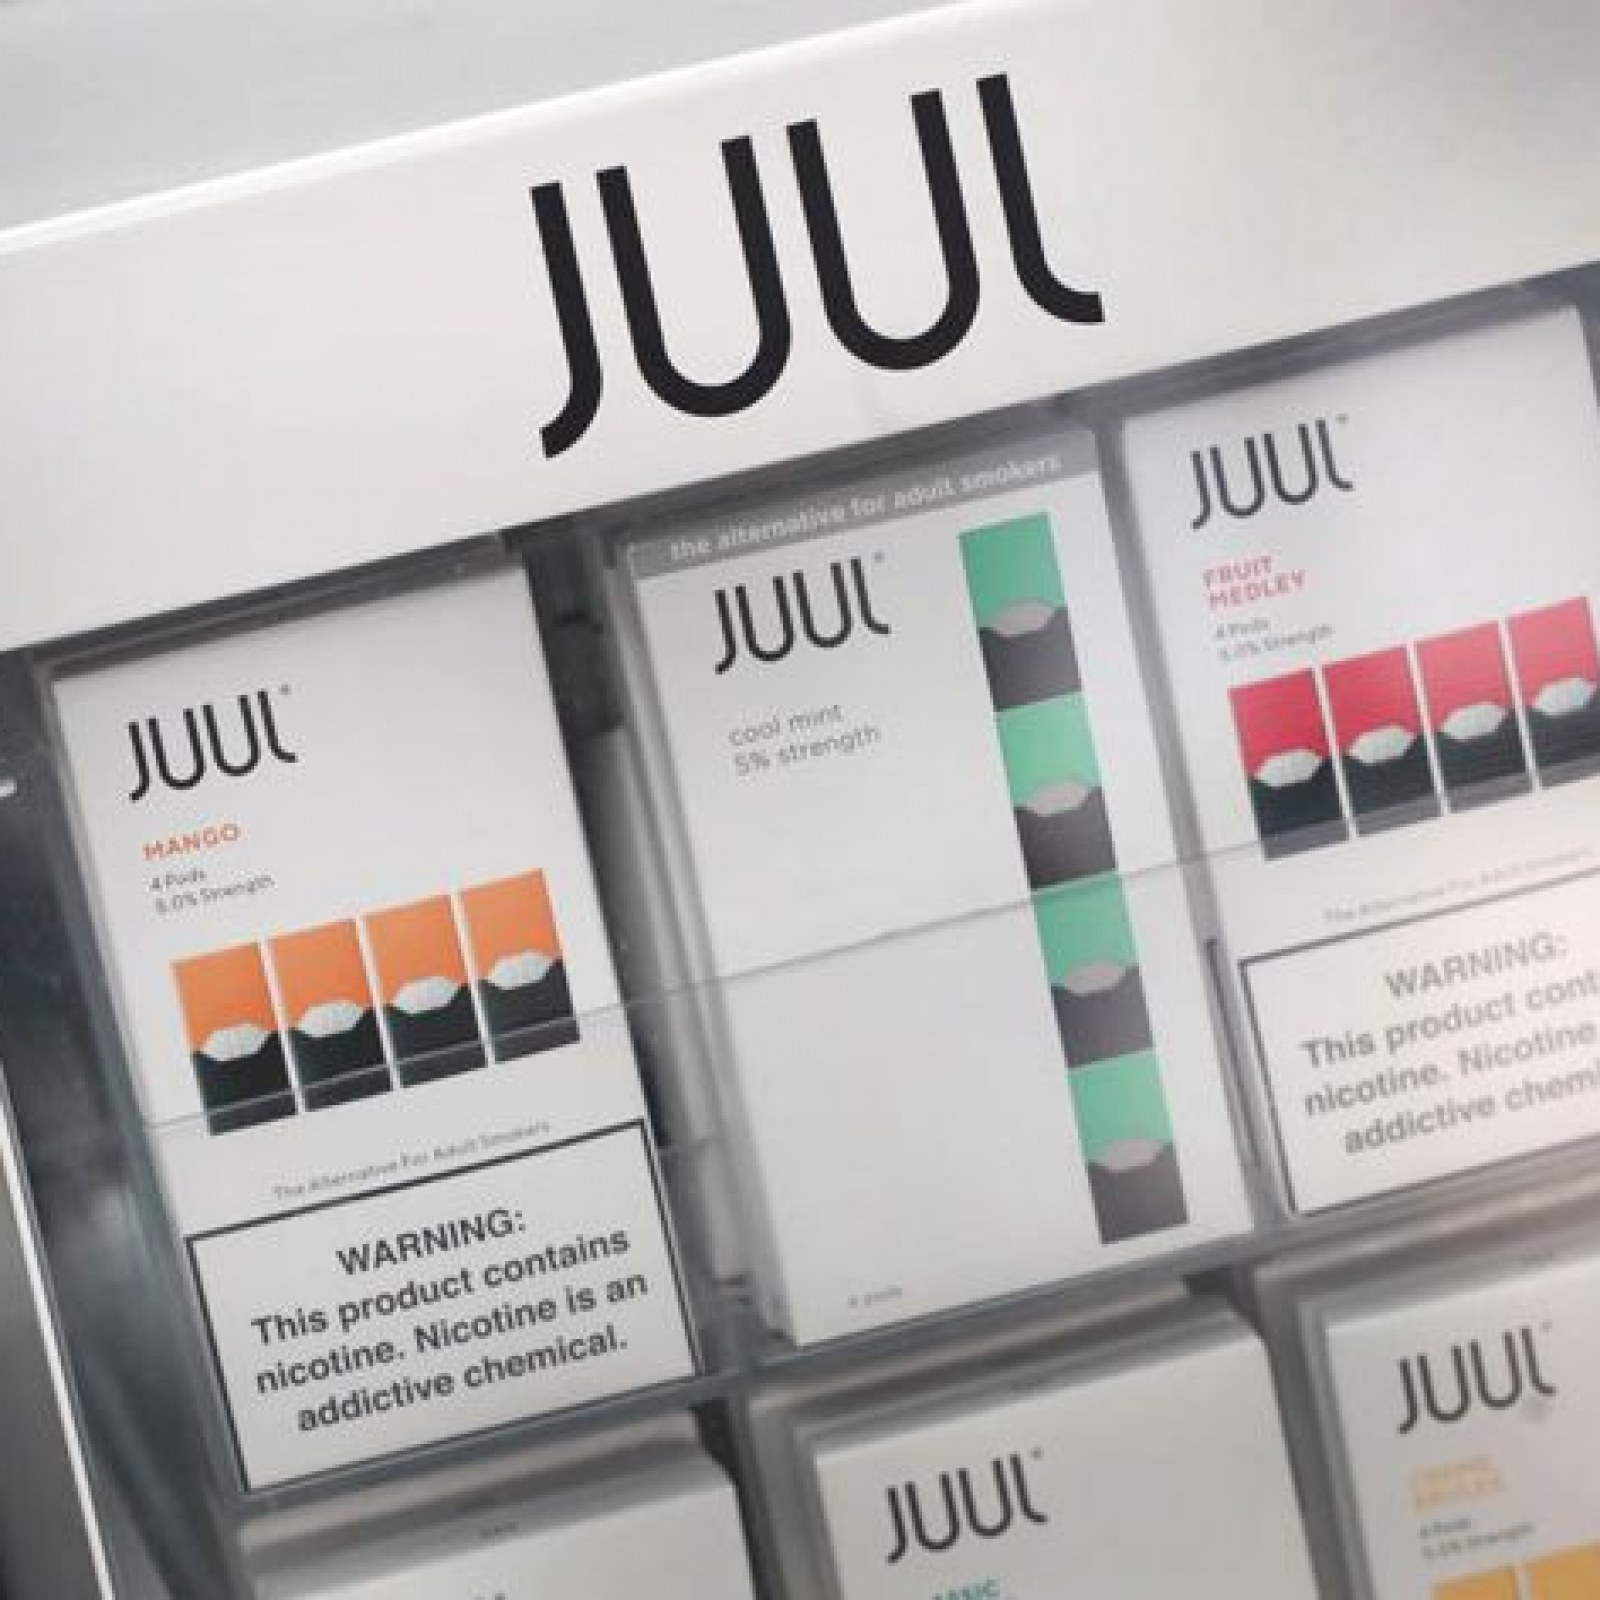 Why Won't My Juul Hit? And 11 Other Questions Answered